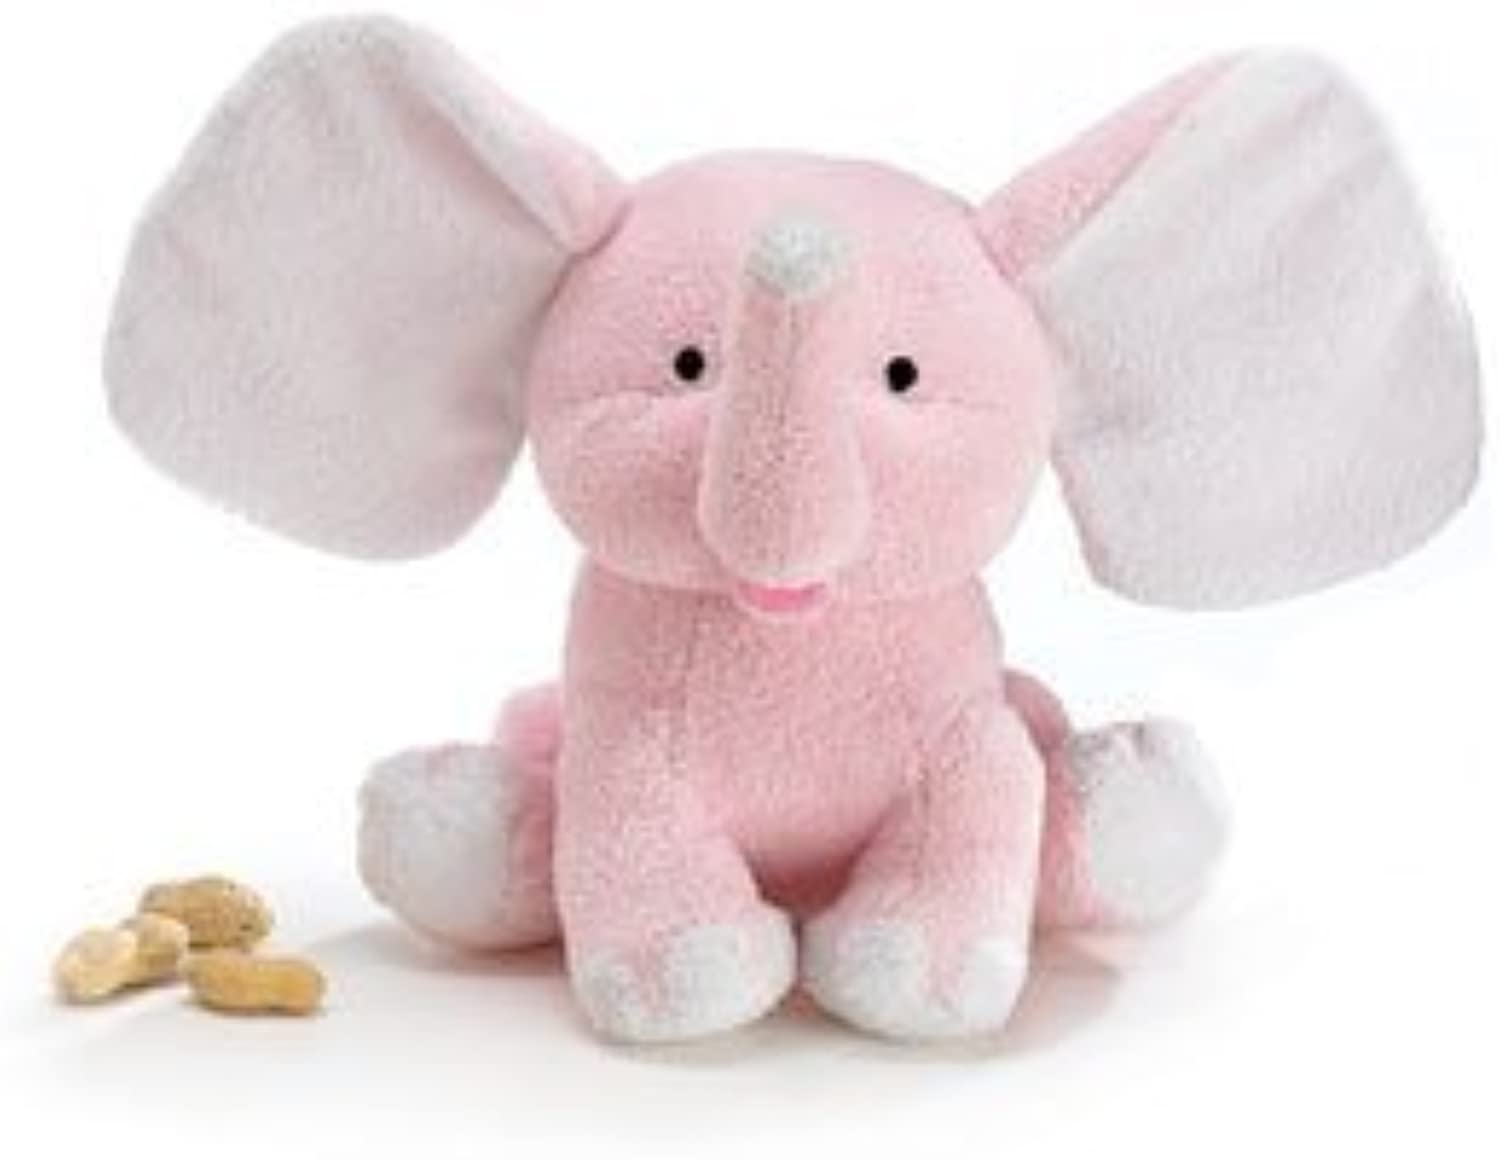 Plush Baby Sissy 8 Pink Elephant Soft and Sweet For Baby Nursery by Burton & Burton